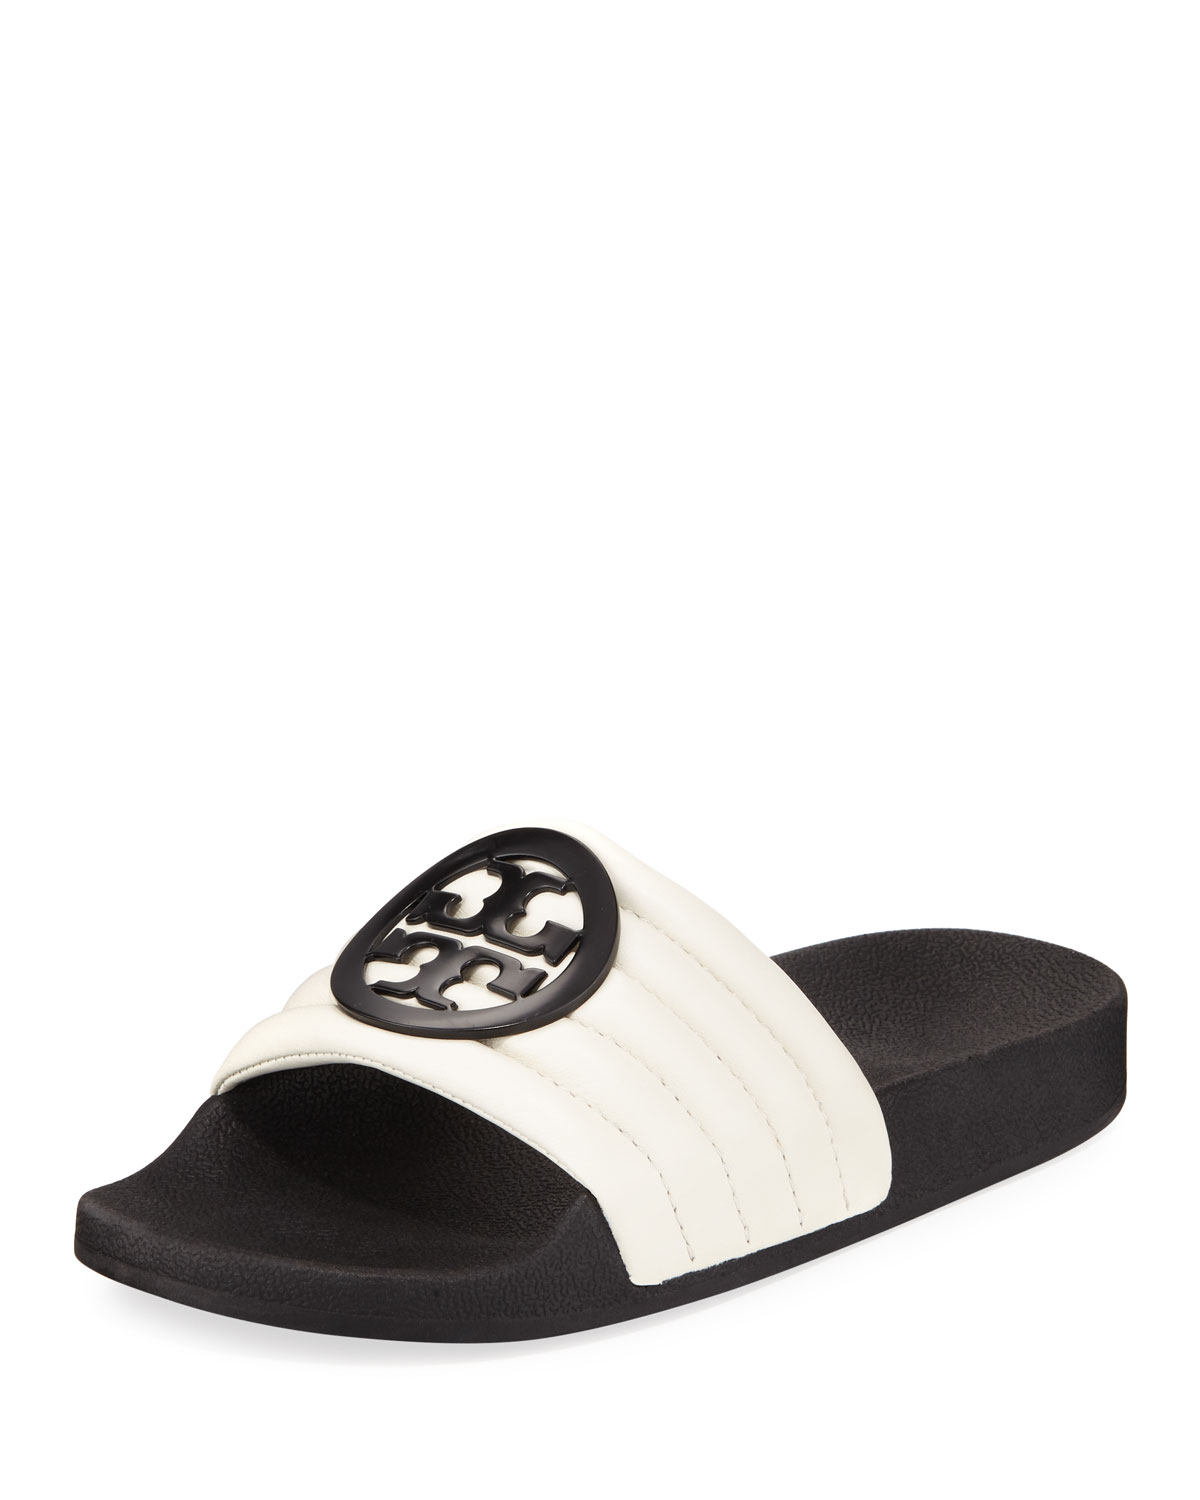 Tory Burch Lina Padded Two-Tone Padded Lina Slide Sandal 57d8eb